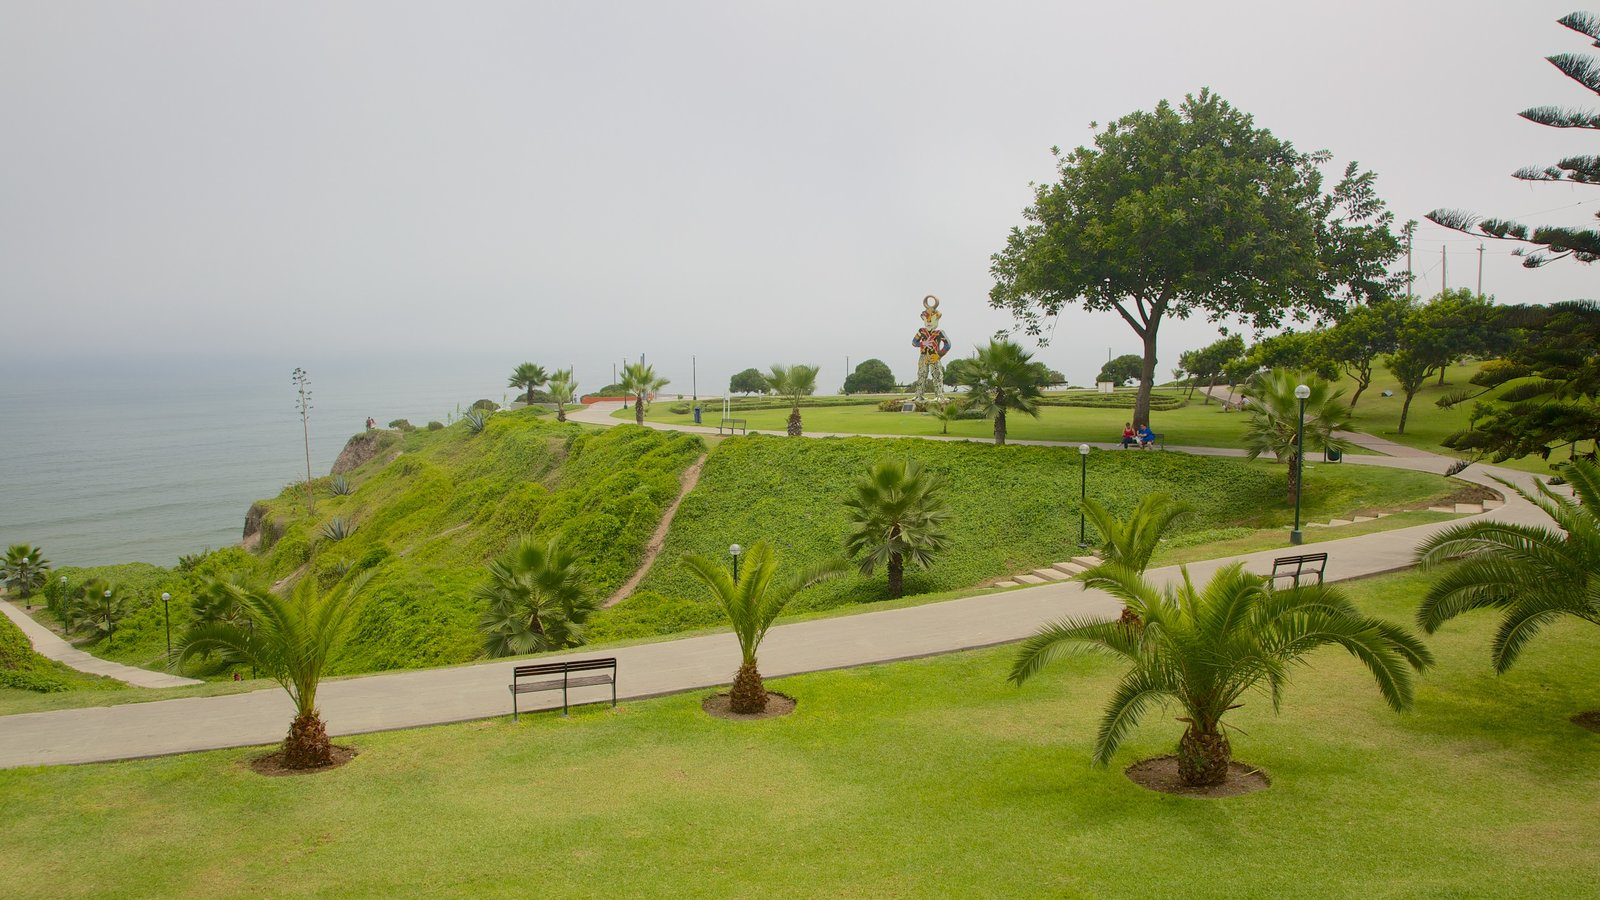 Lima showing mist or fog, a garden and general coastal views